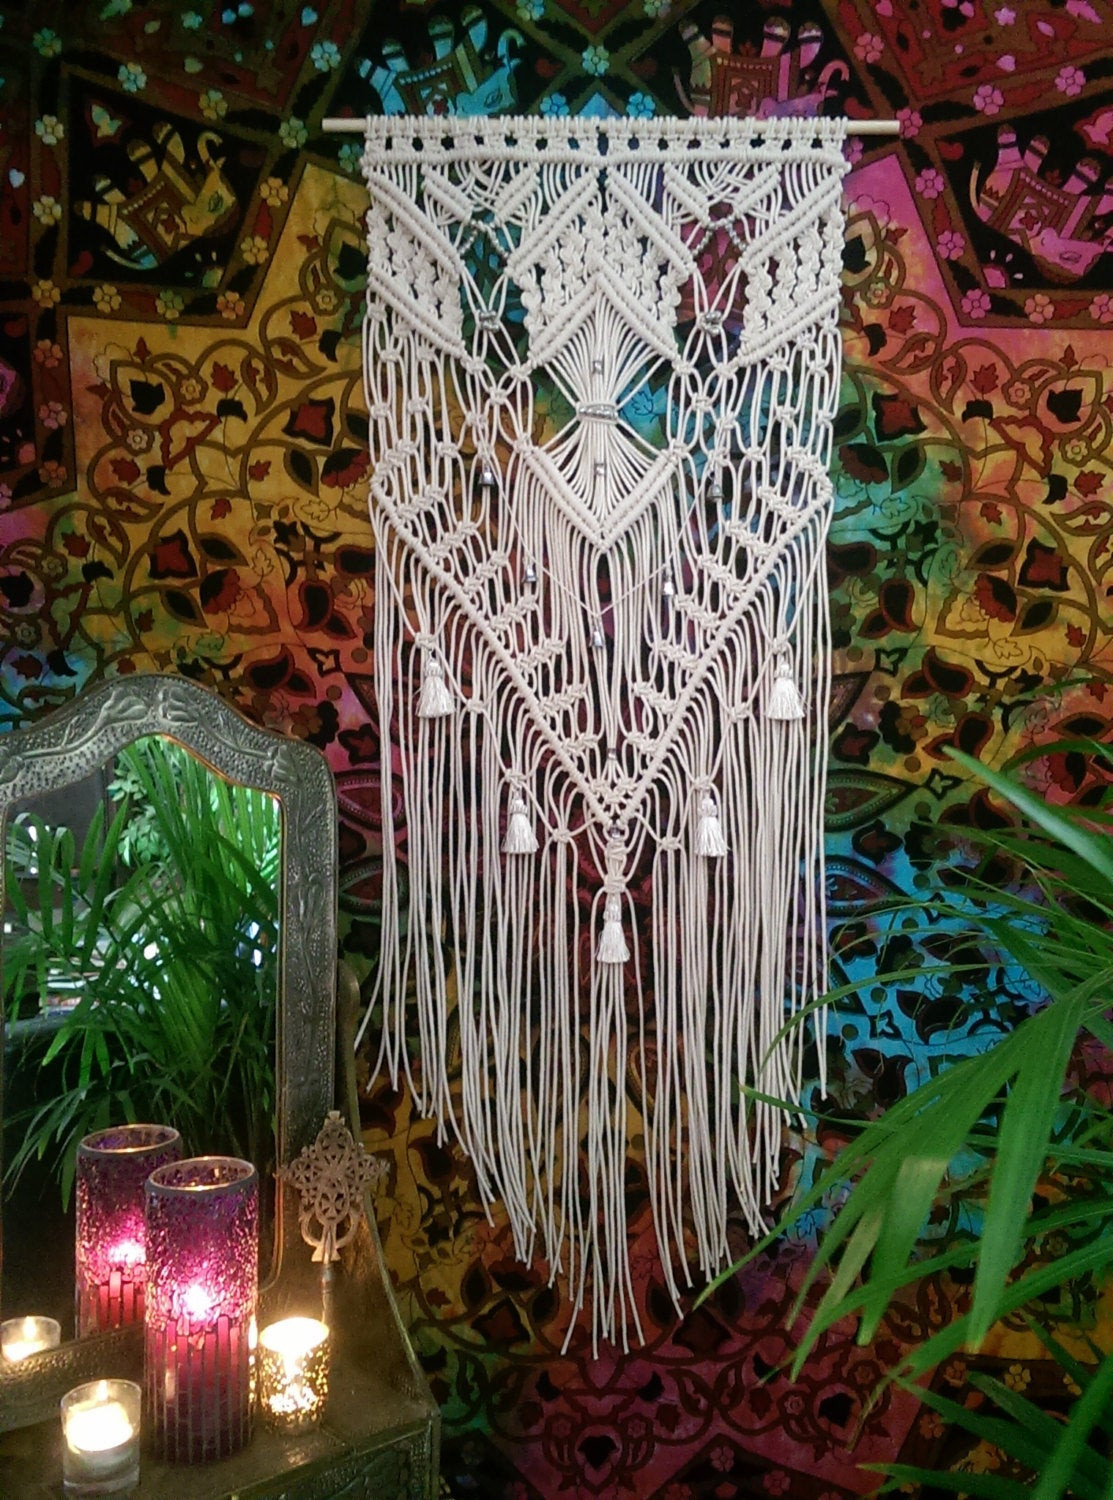 Best ideas about Boho Wall Art . Save or Pin Boho Decor Hippie Decor Macrame Wall Hanging by Now.